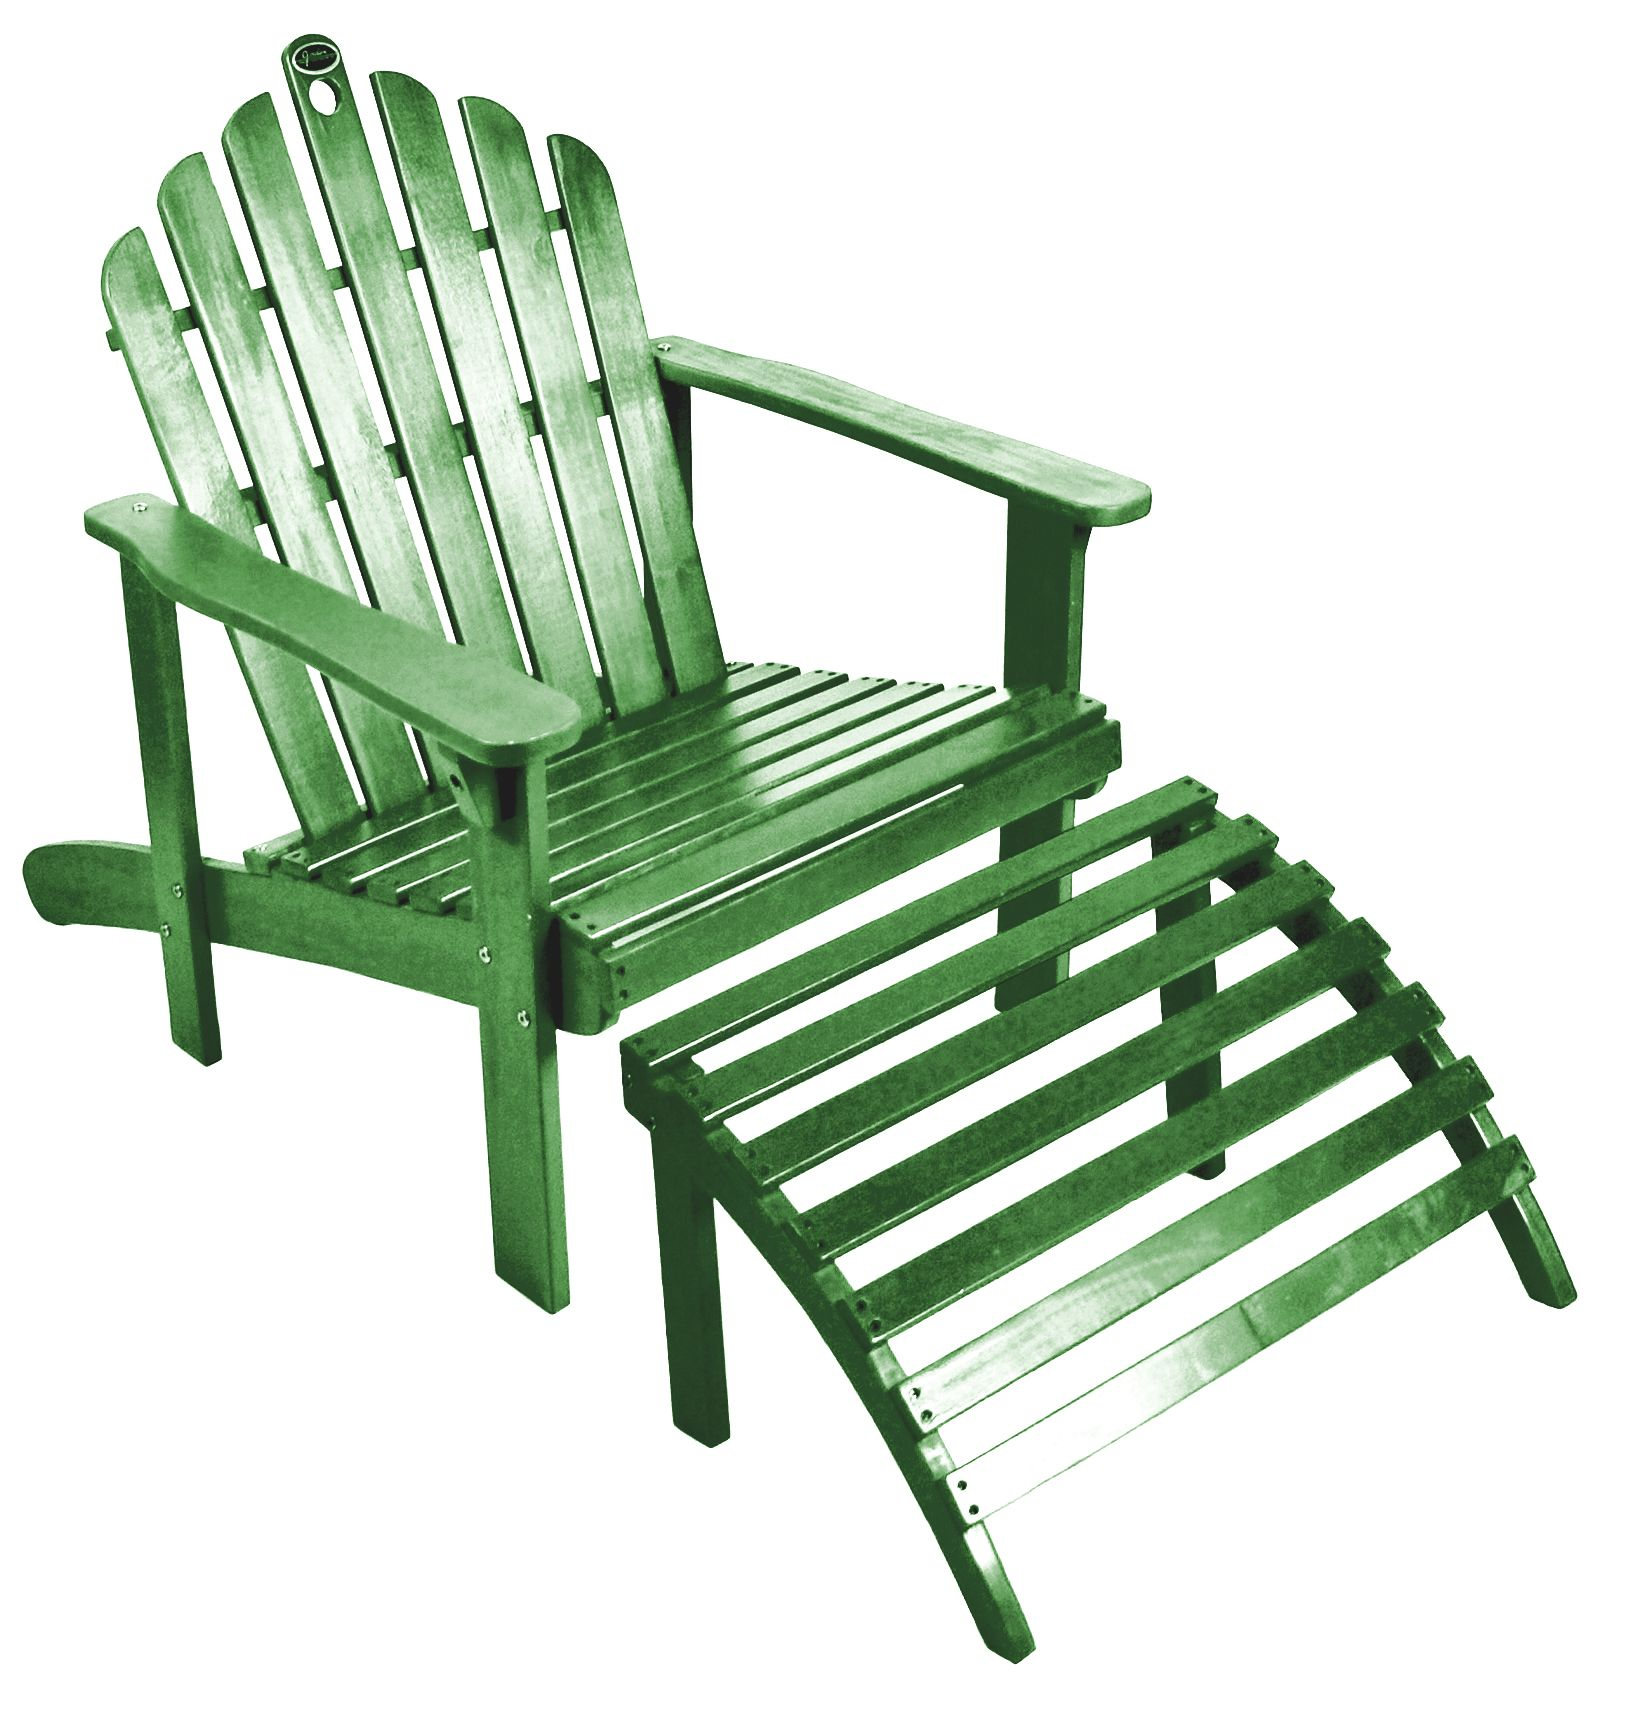 Patio Chairs With Ottoman Green Adirondack Chair With Ottoman Outdoor Living